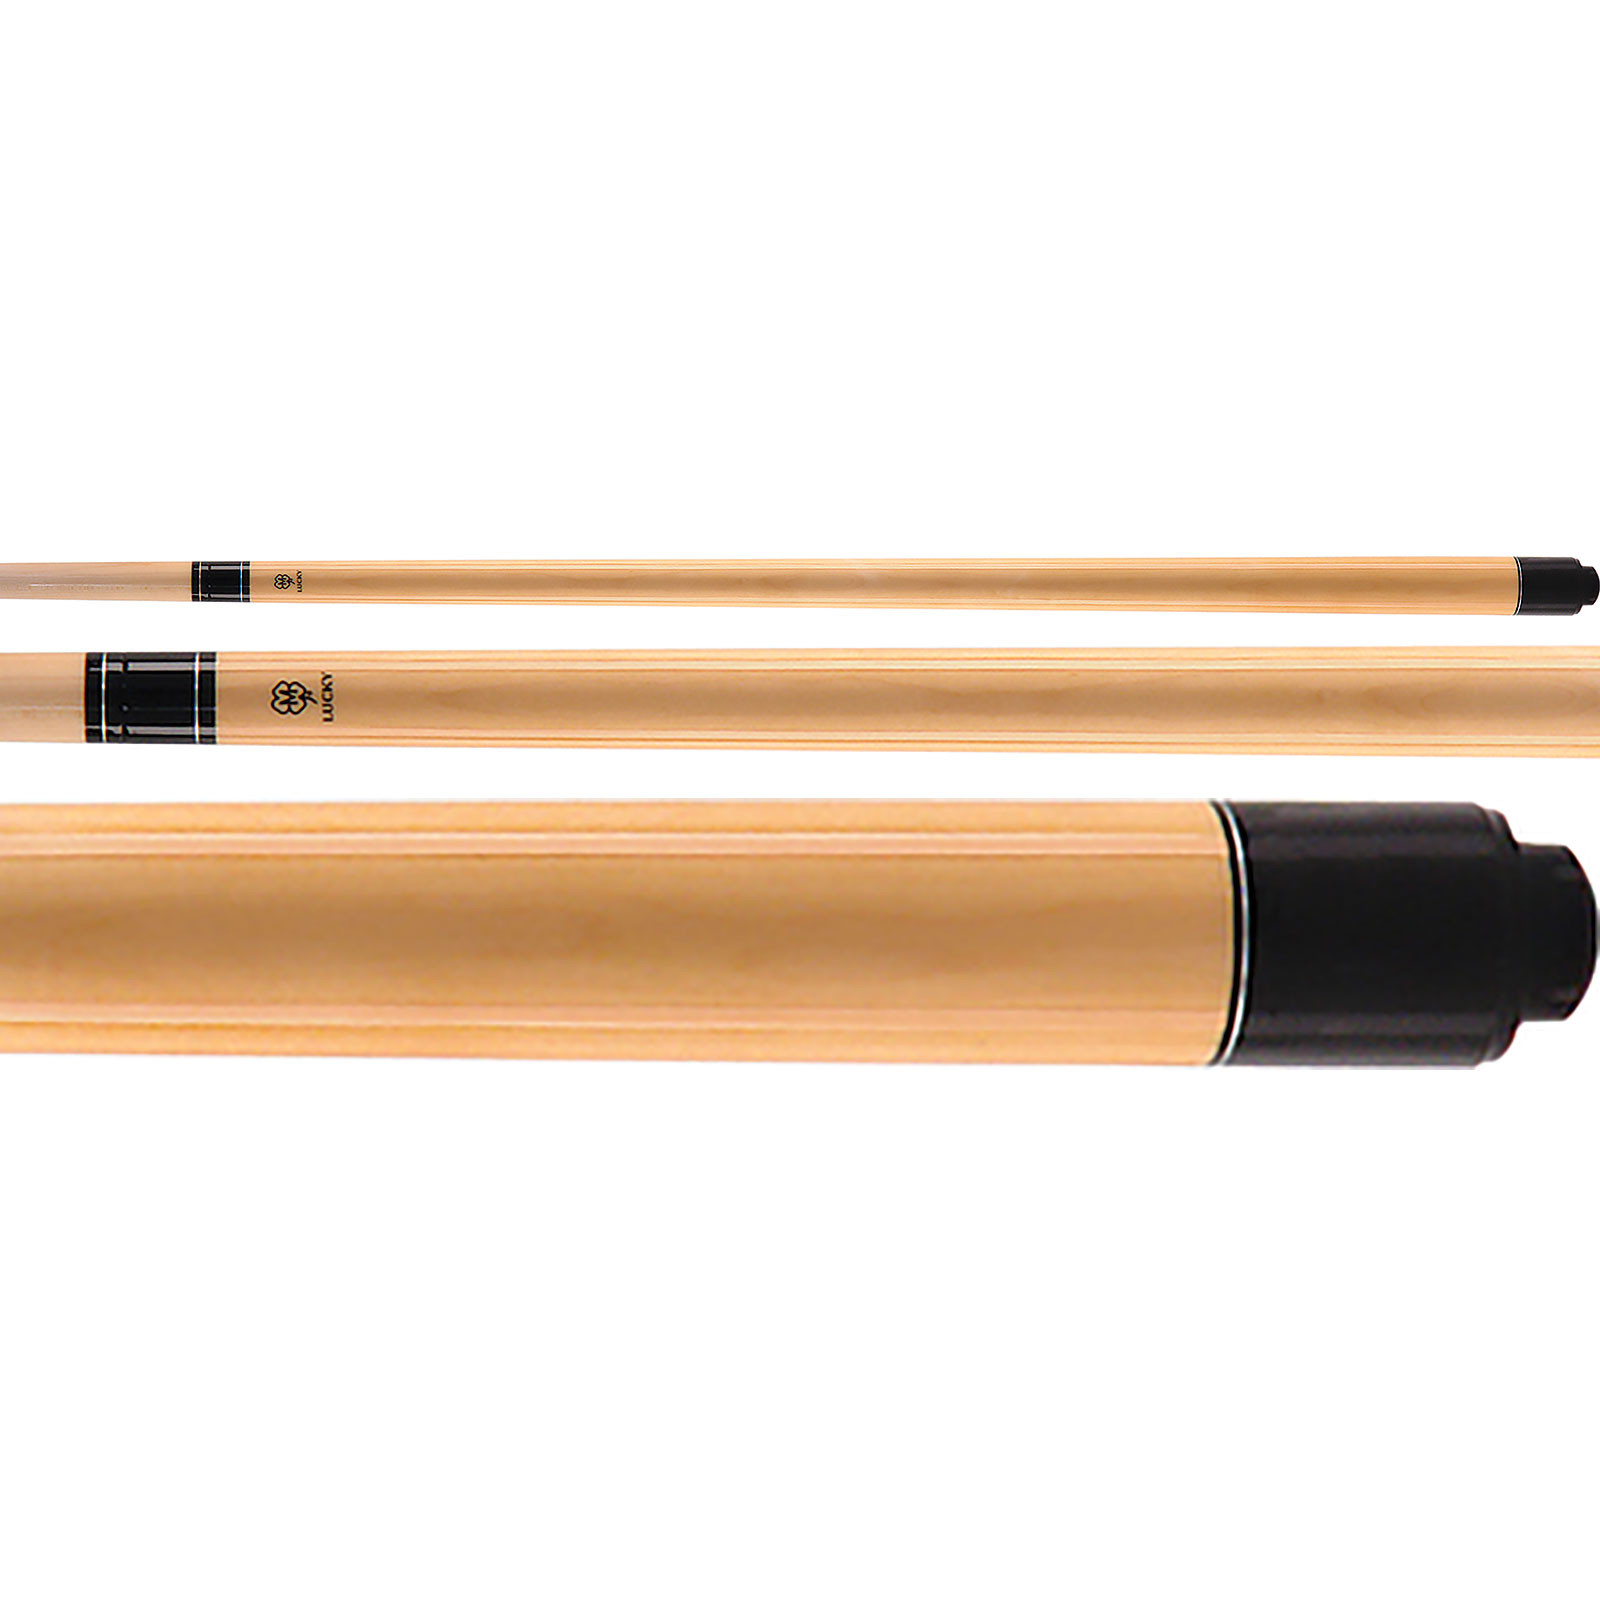 Mcdermott Lucky Pool Cue Stick L4 Honey